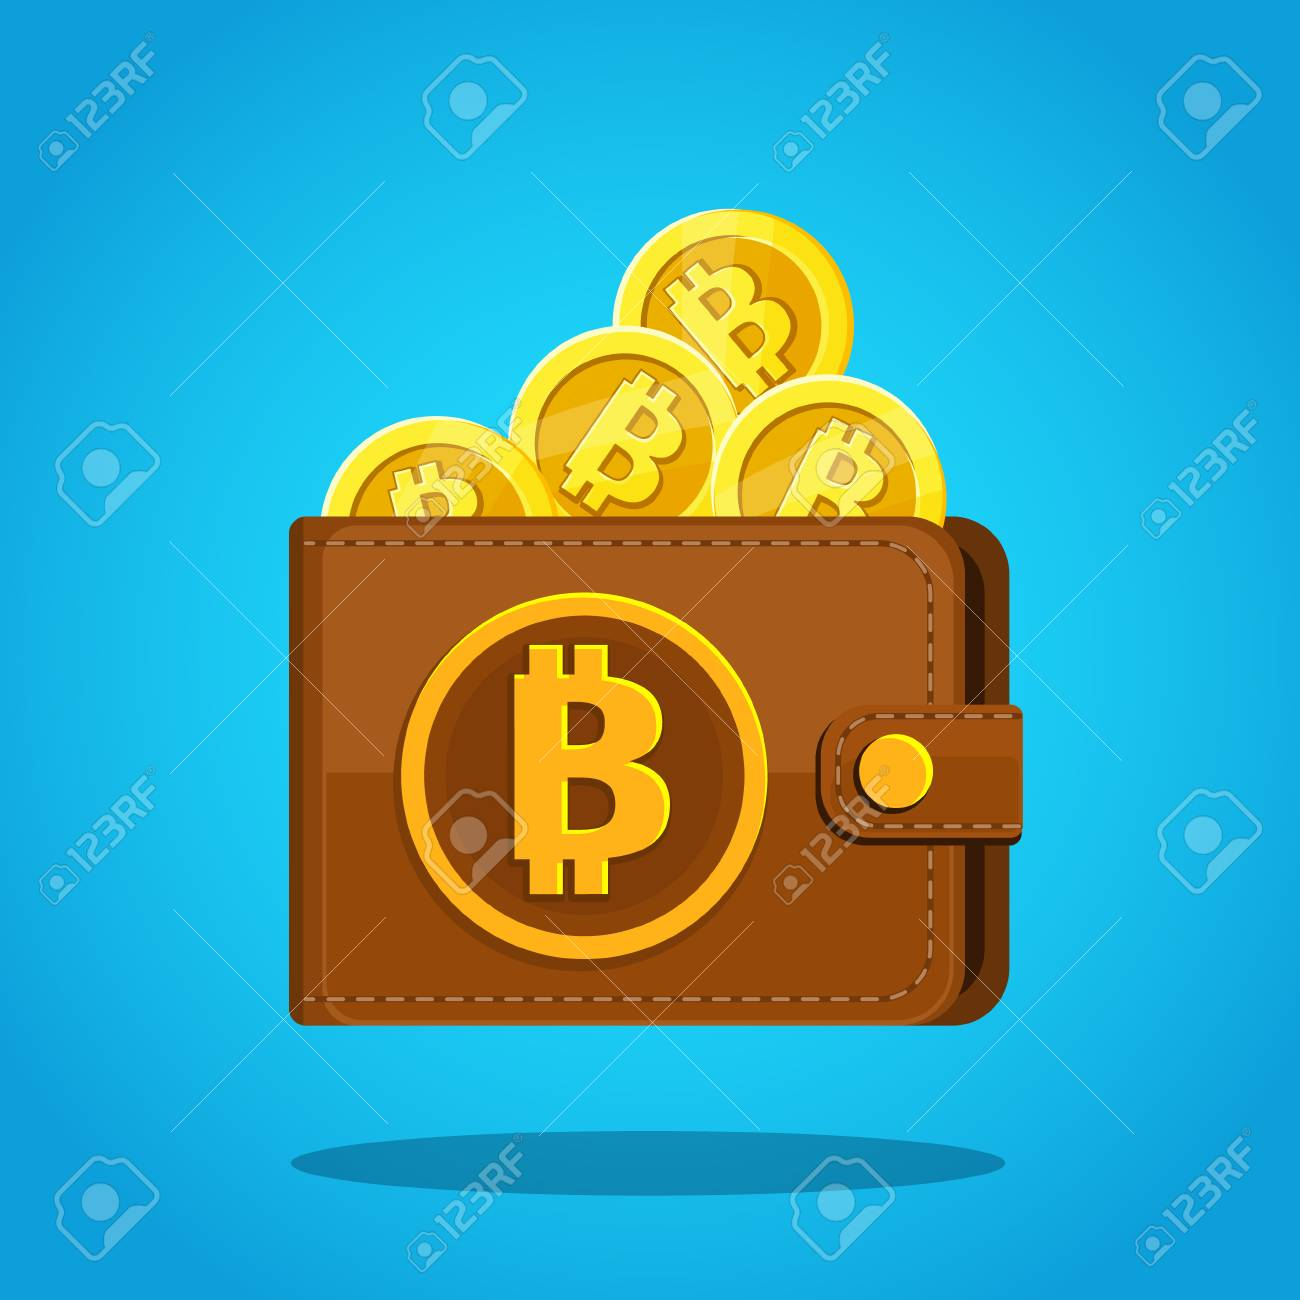 Concept of crypto currency brown bitcoin wallet with coins on brown bitcoin wallet with coins on blue background flat design ccuart Choice Image